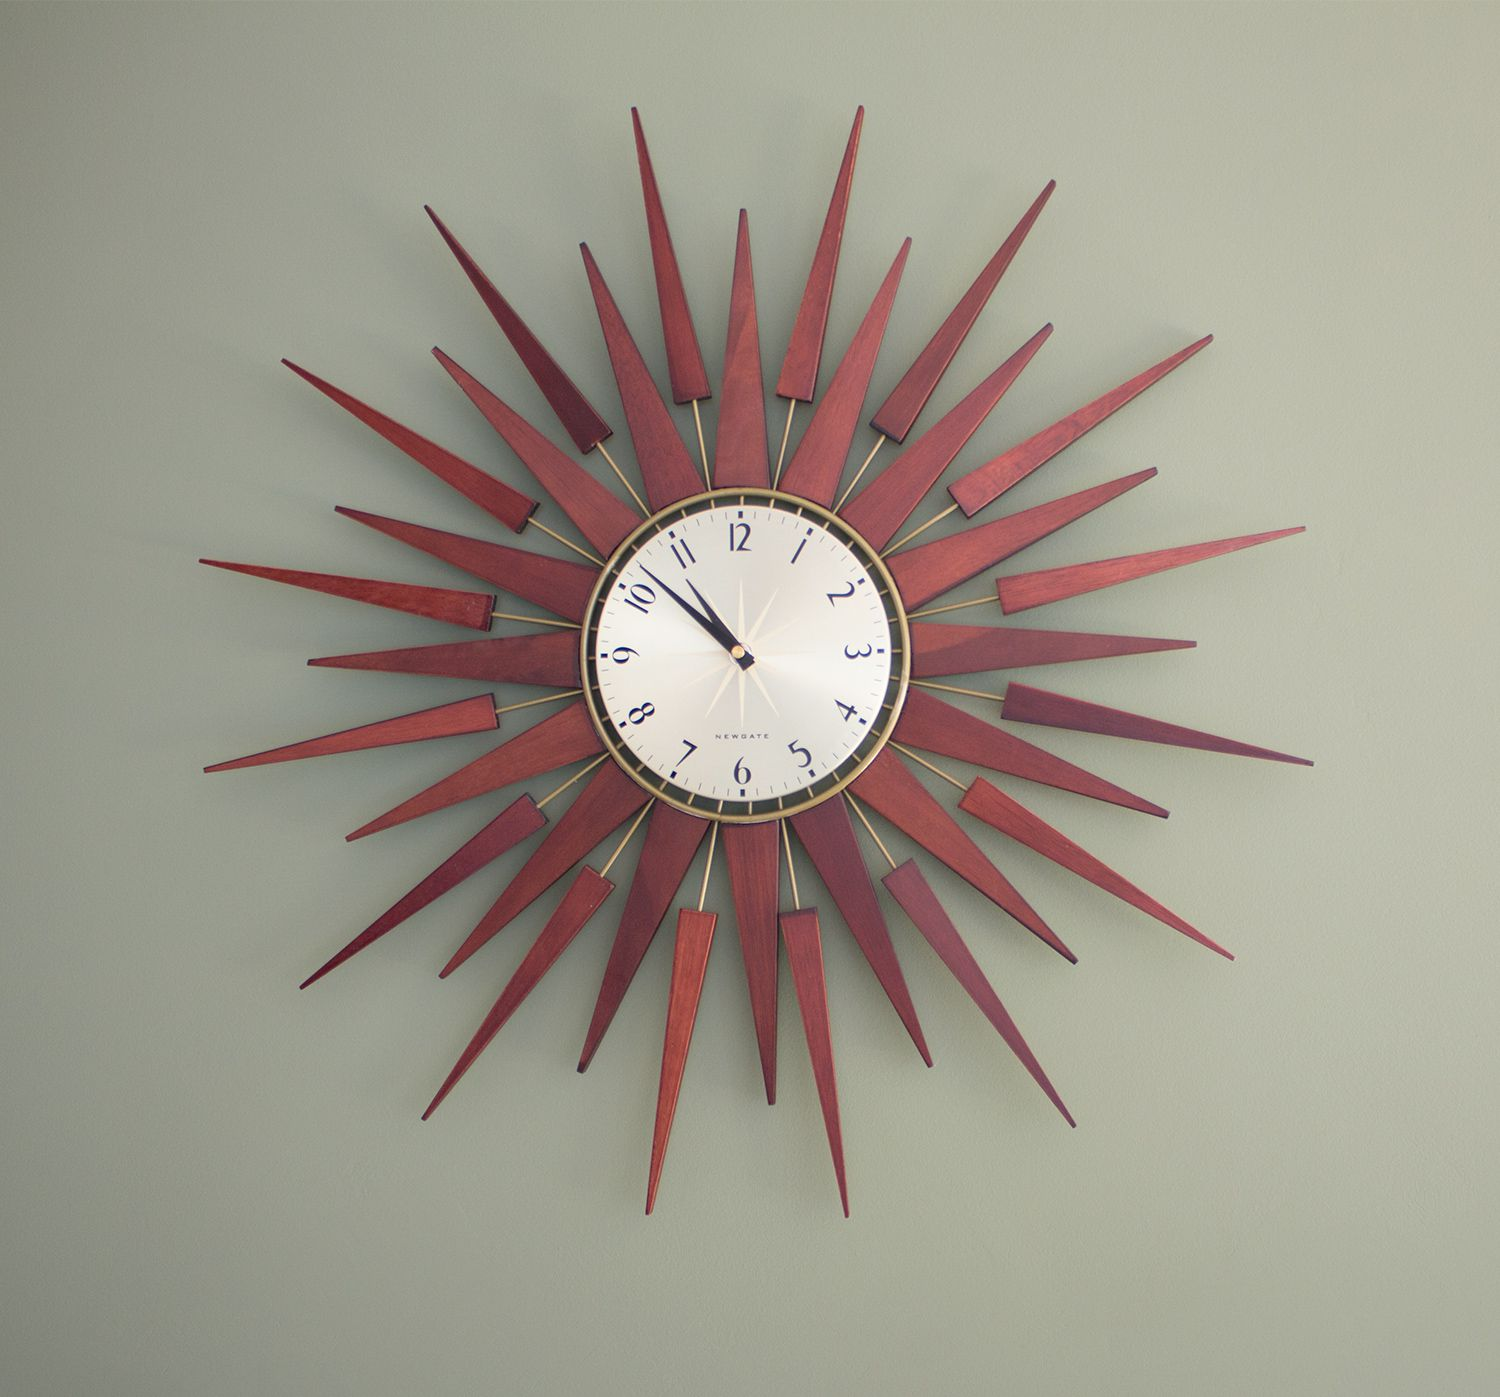 A close up of the walnut sunburst clock on the wall.